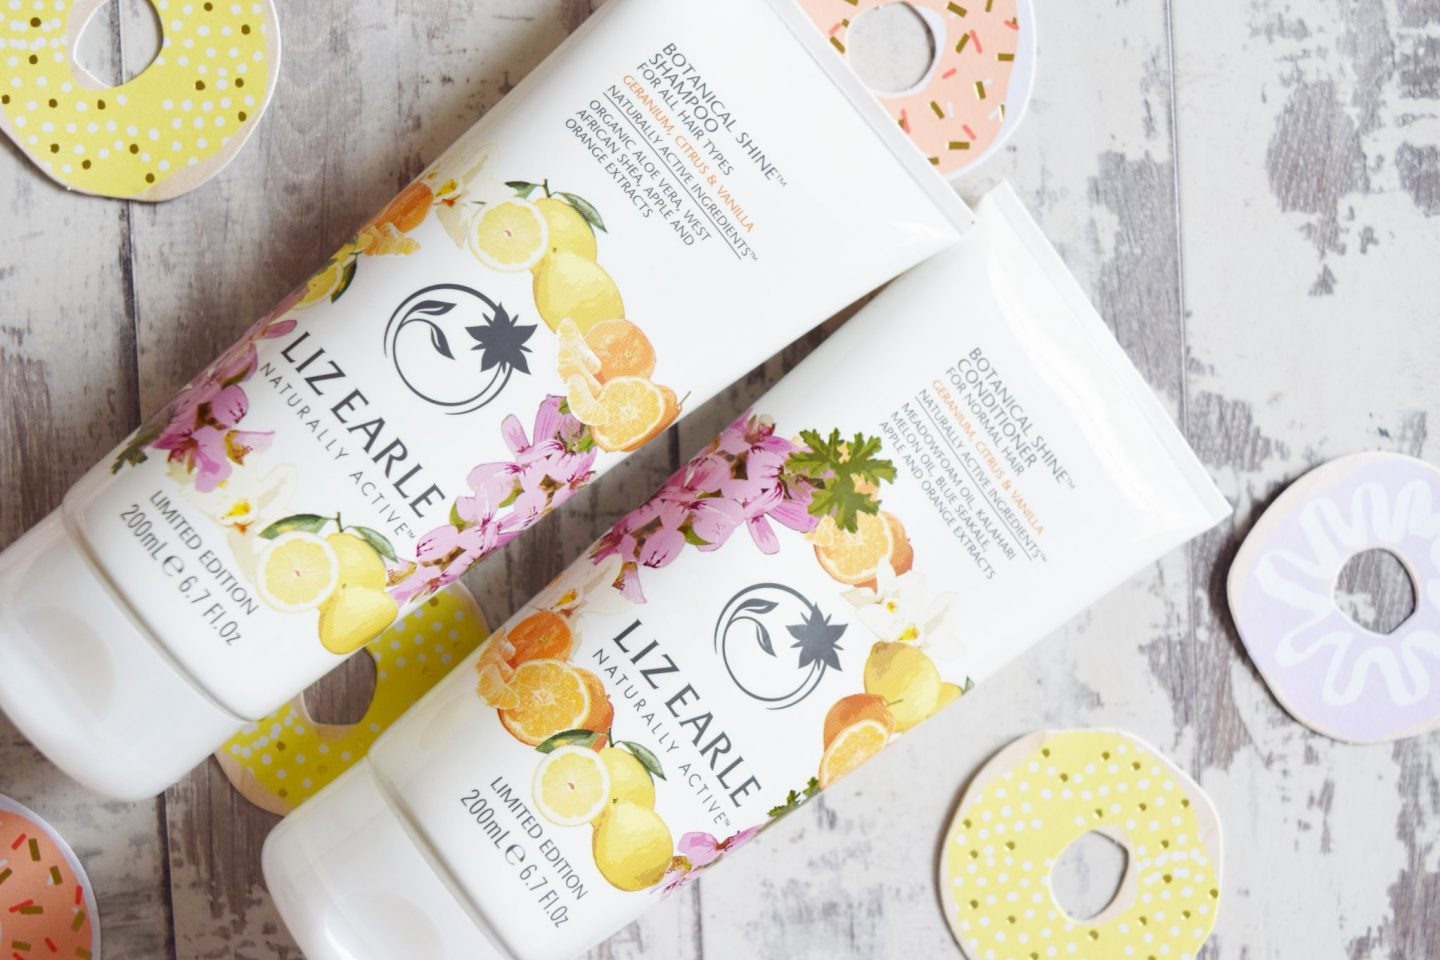 Liz Earle Botanical Shine Shampoo & Conditioner in Geranium, Citrus and Vanilla